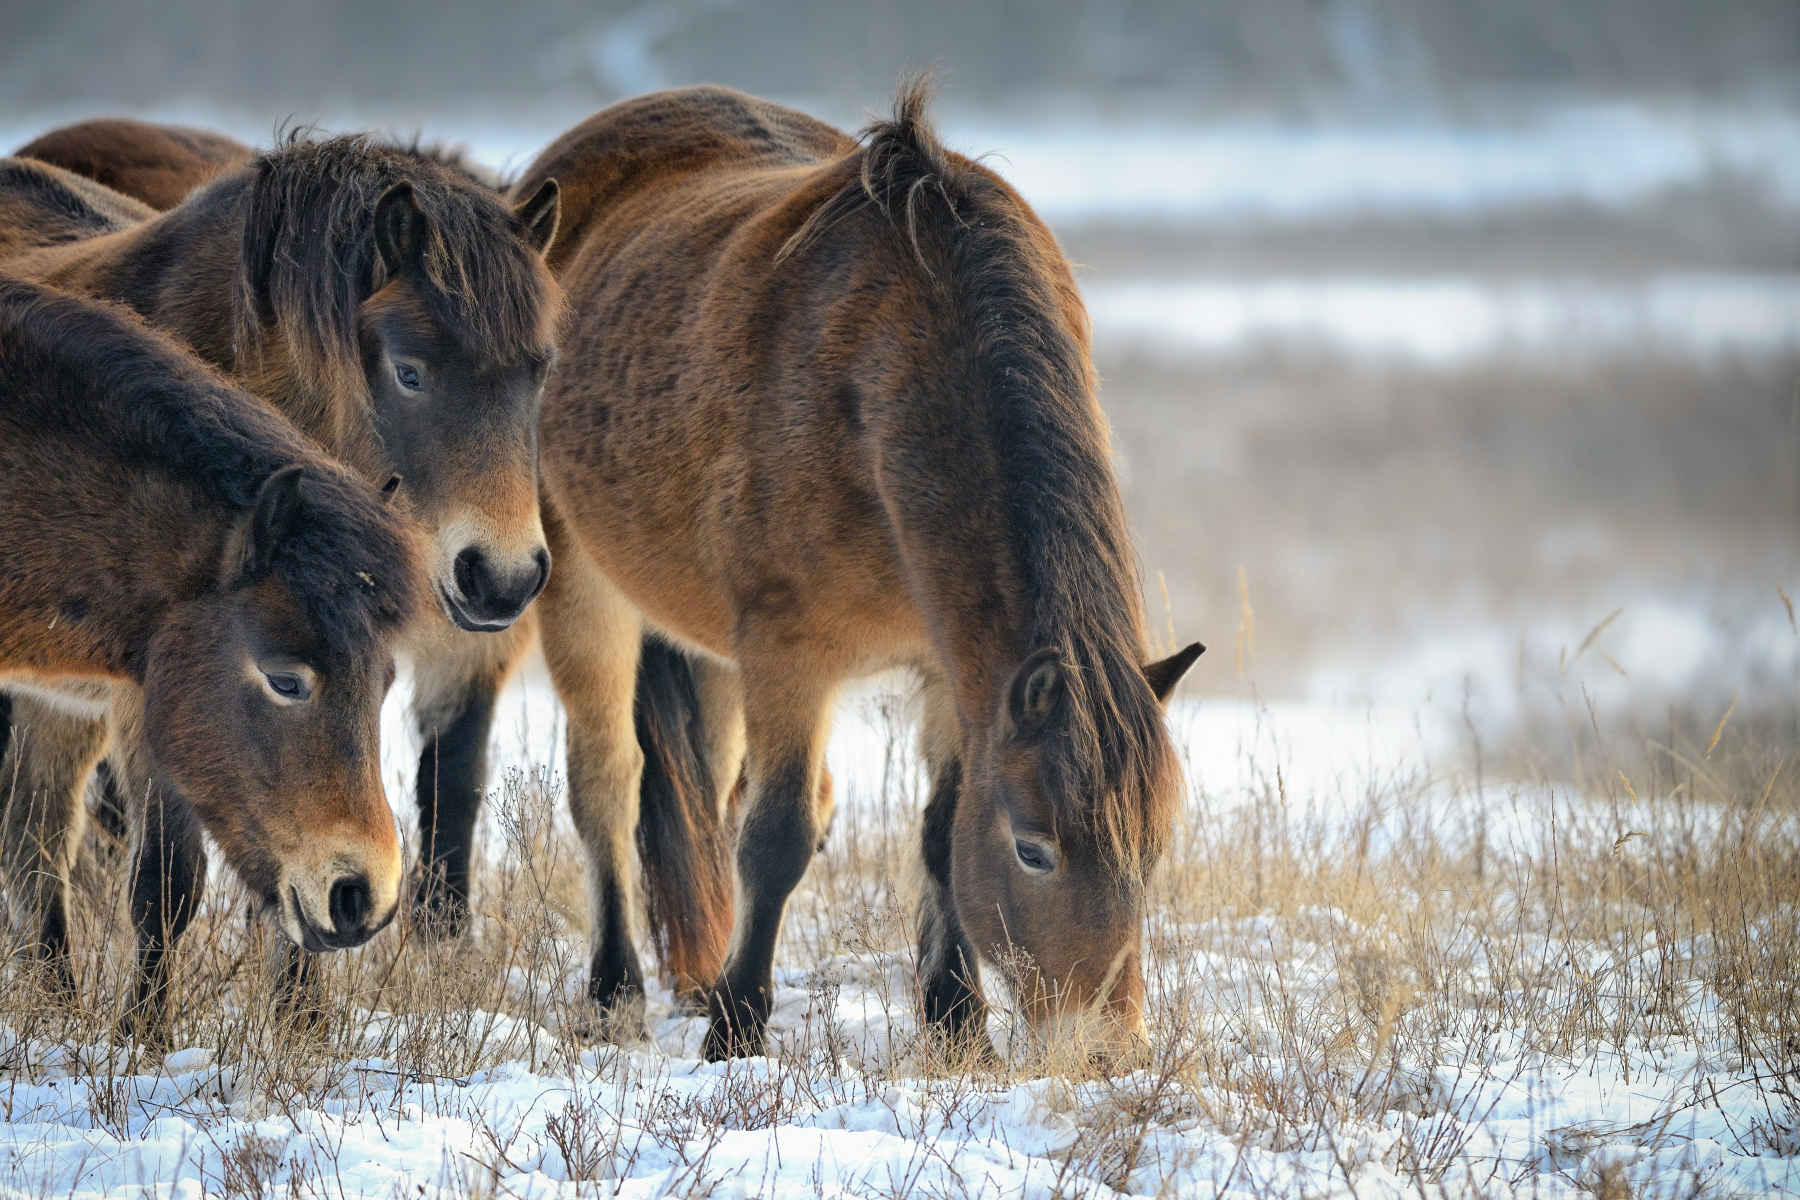 ponies grazing in a snowy field